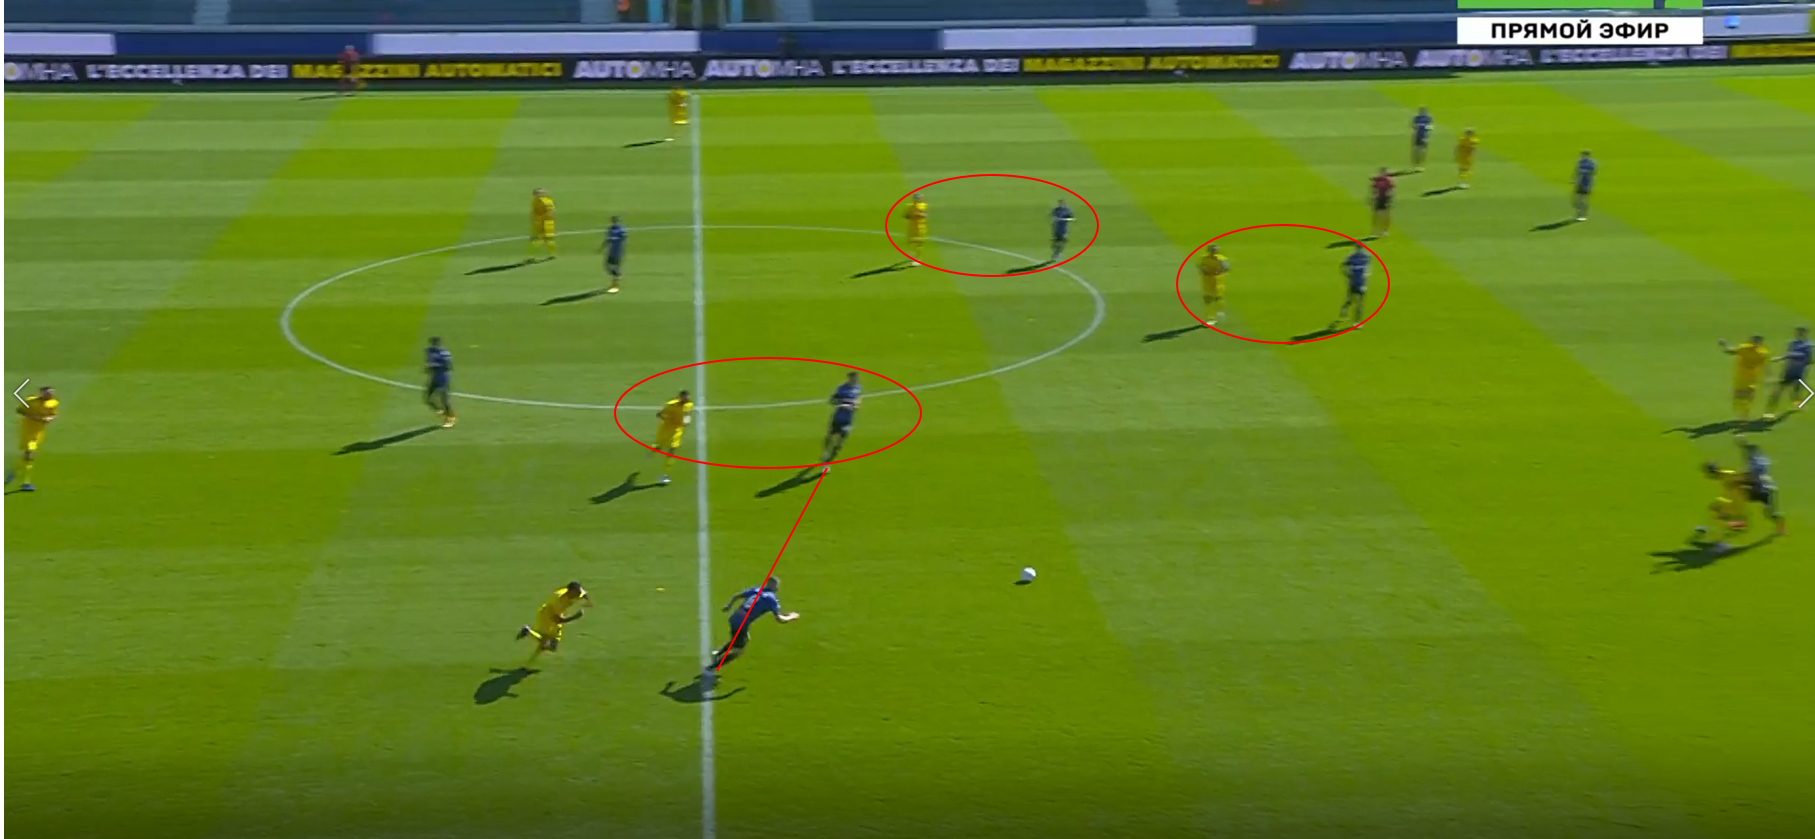 UEFA Champions League 2020/21: Atalanta vs Liverpool- tactical analysis tactics